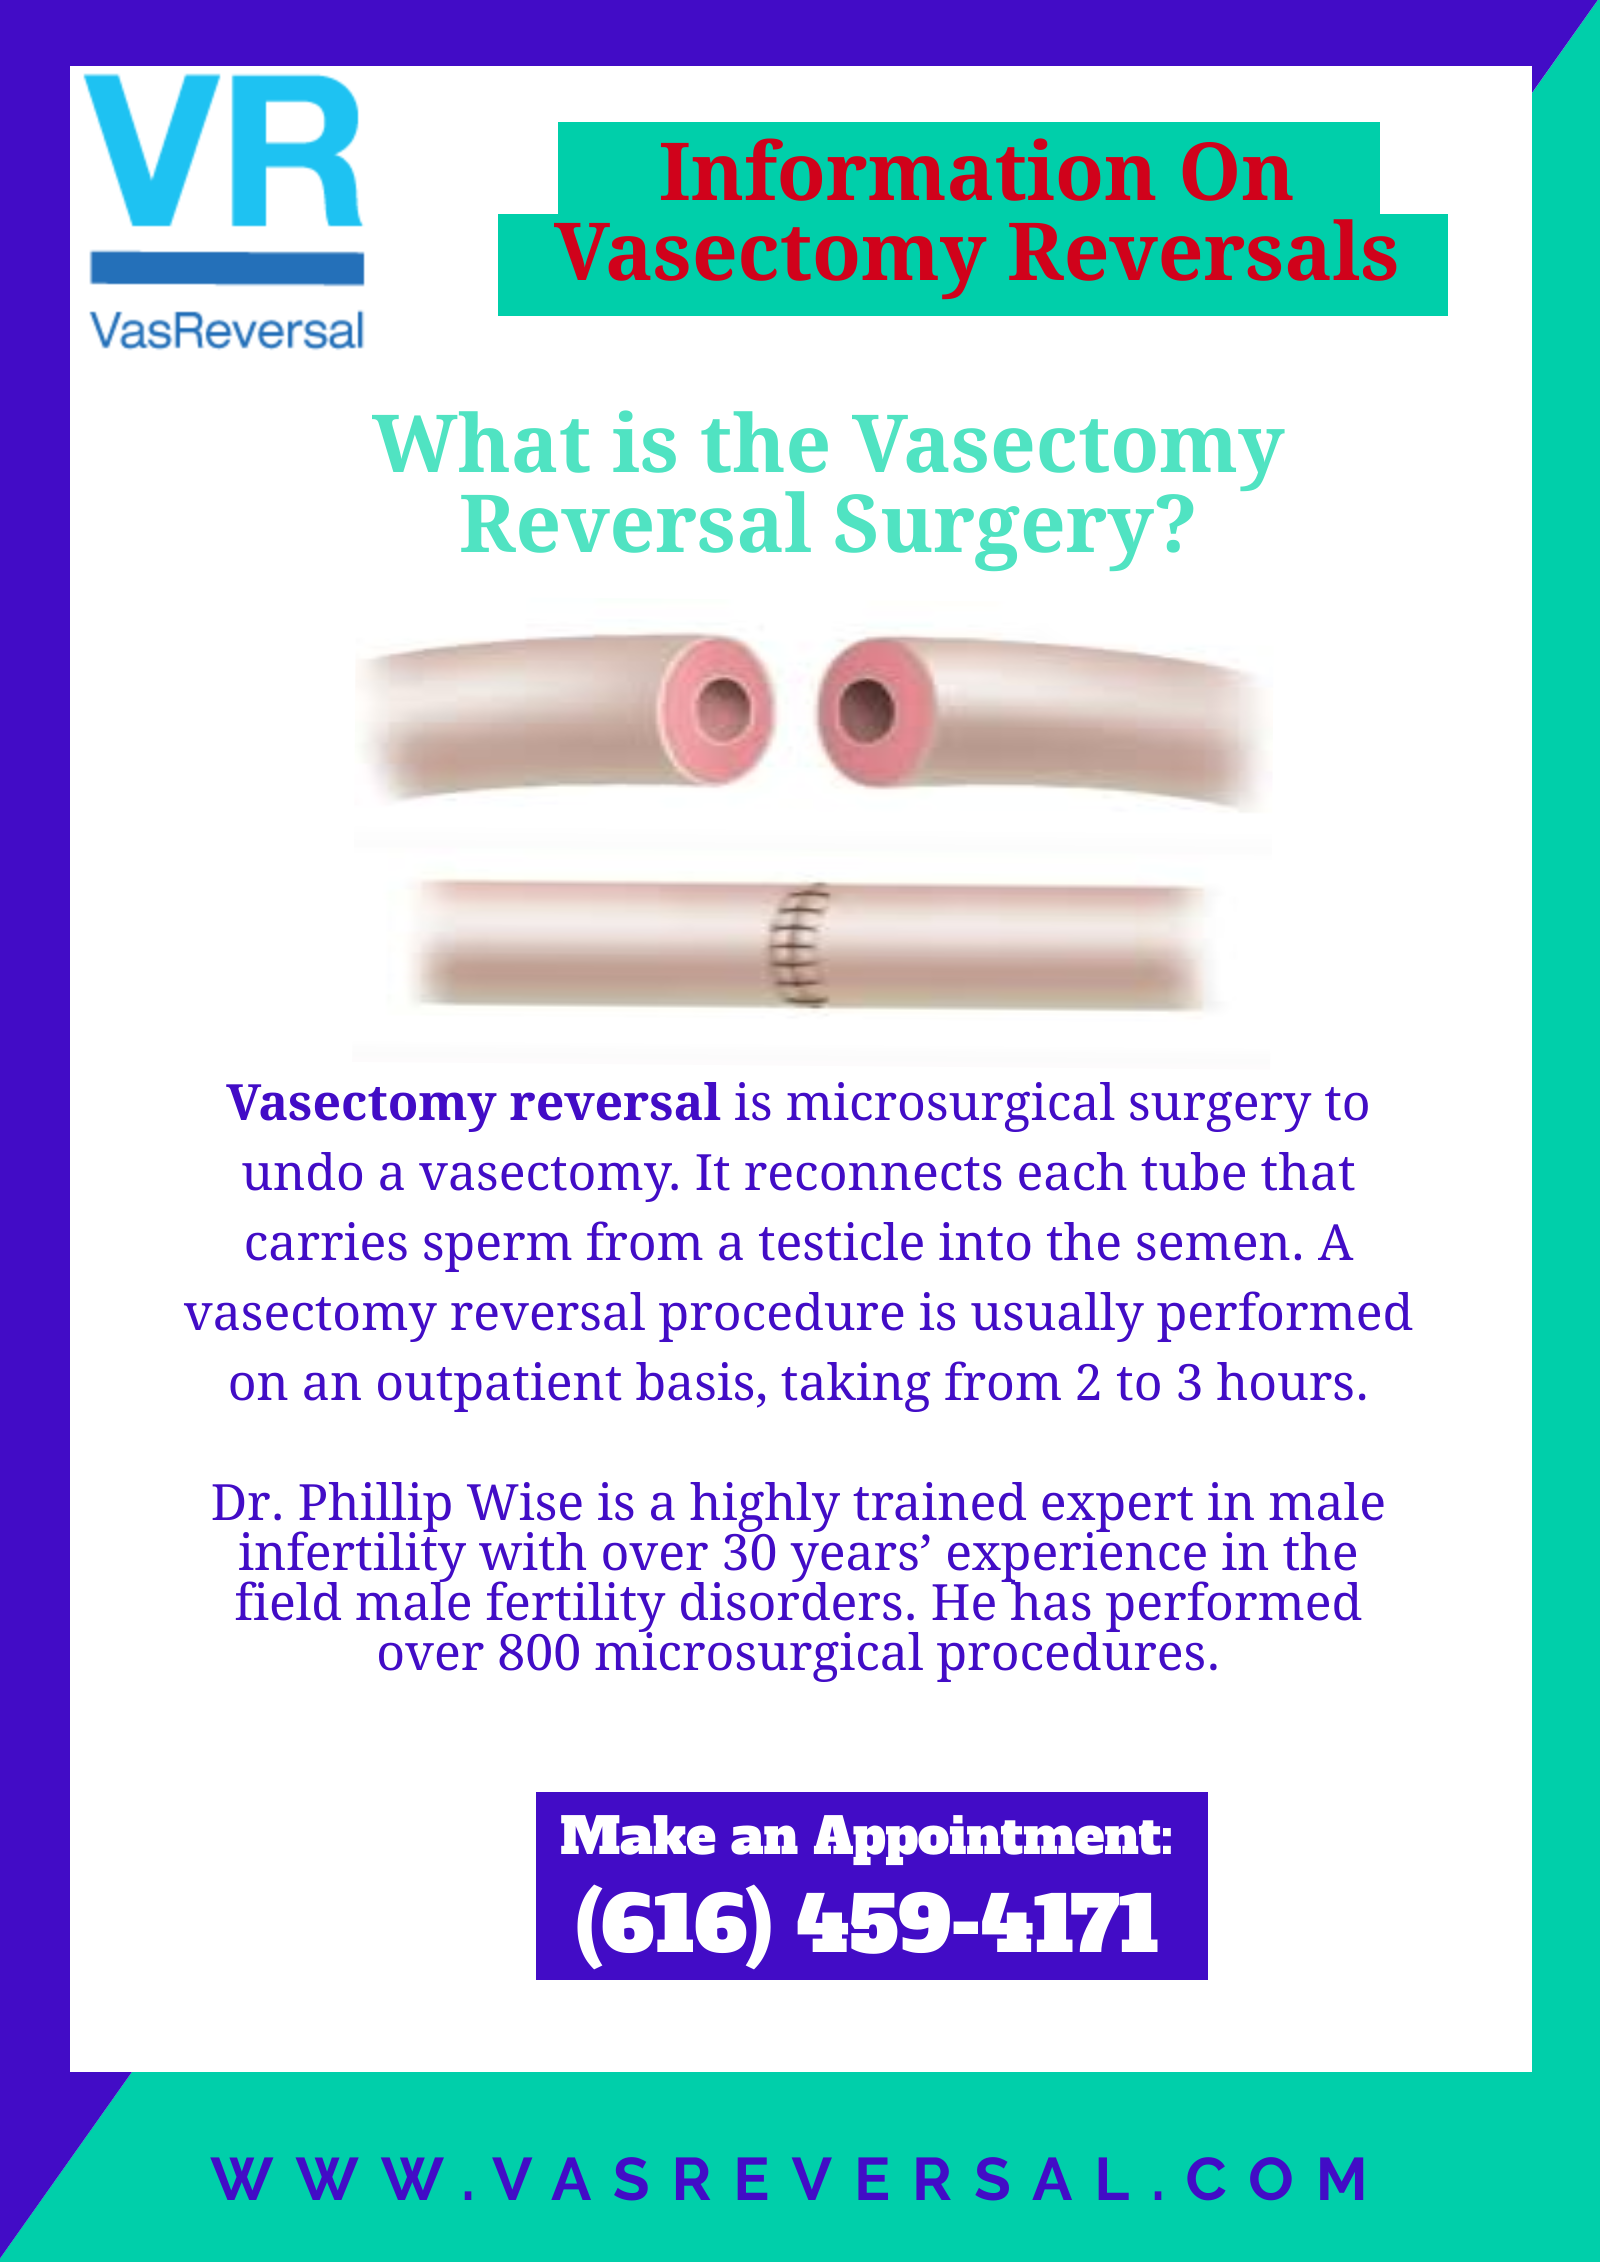 How Long Does It Take To Get A Vasectomy Reversal